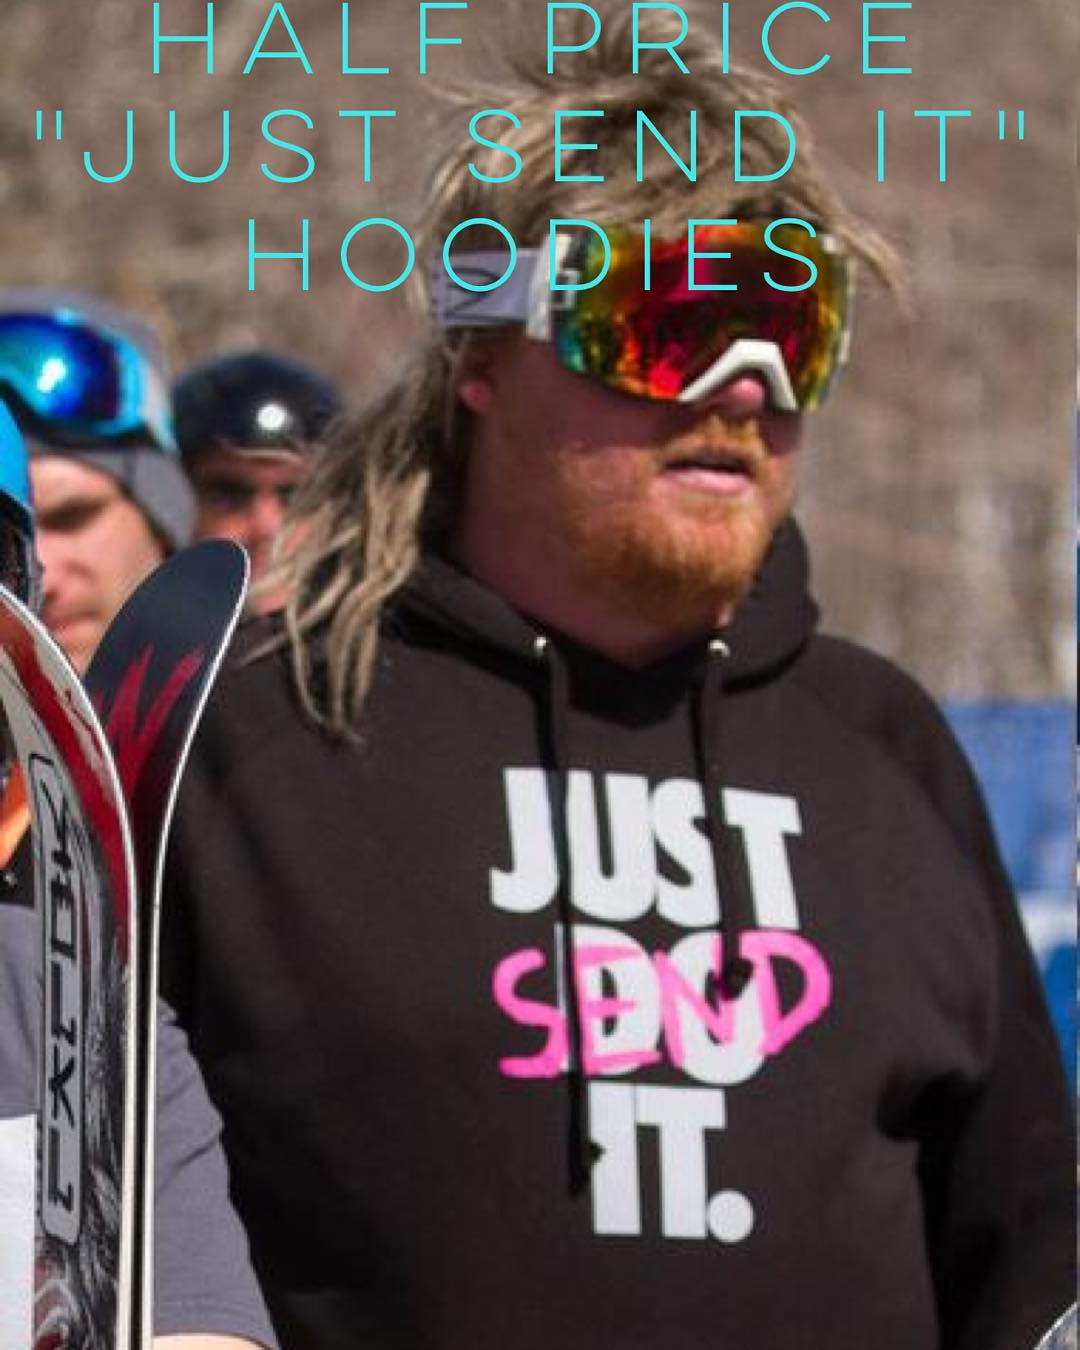 "Goto www.fulsend.com for 50% off on ""Just Send It"" Hoodies! Only 16 left!!! #JustSendIt #skiing #snowboarding #winteriscoming #mountsnow #vermont #mullet"